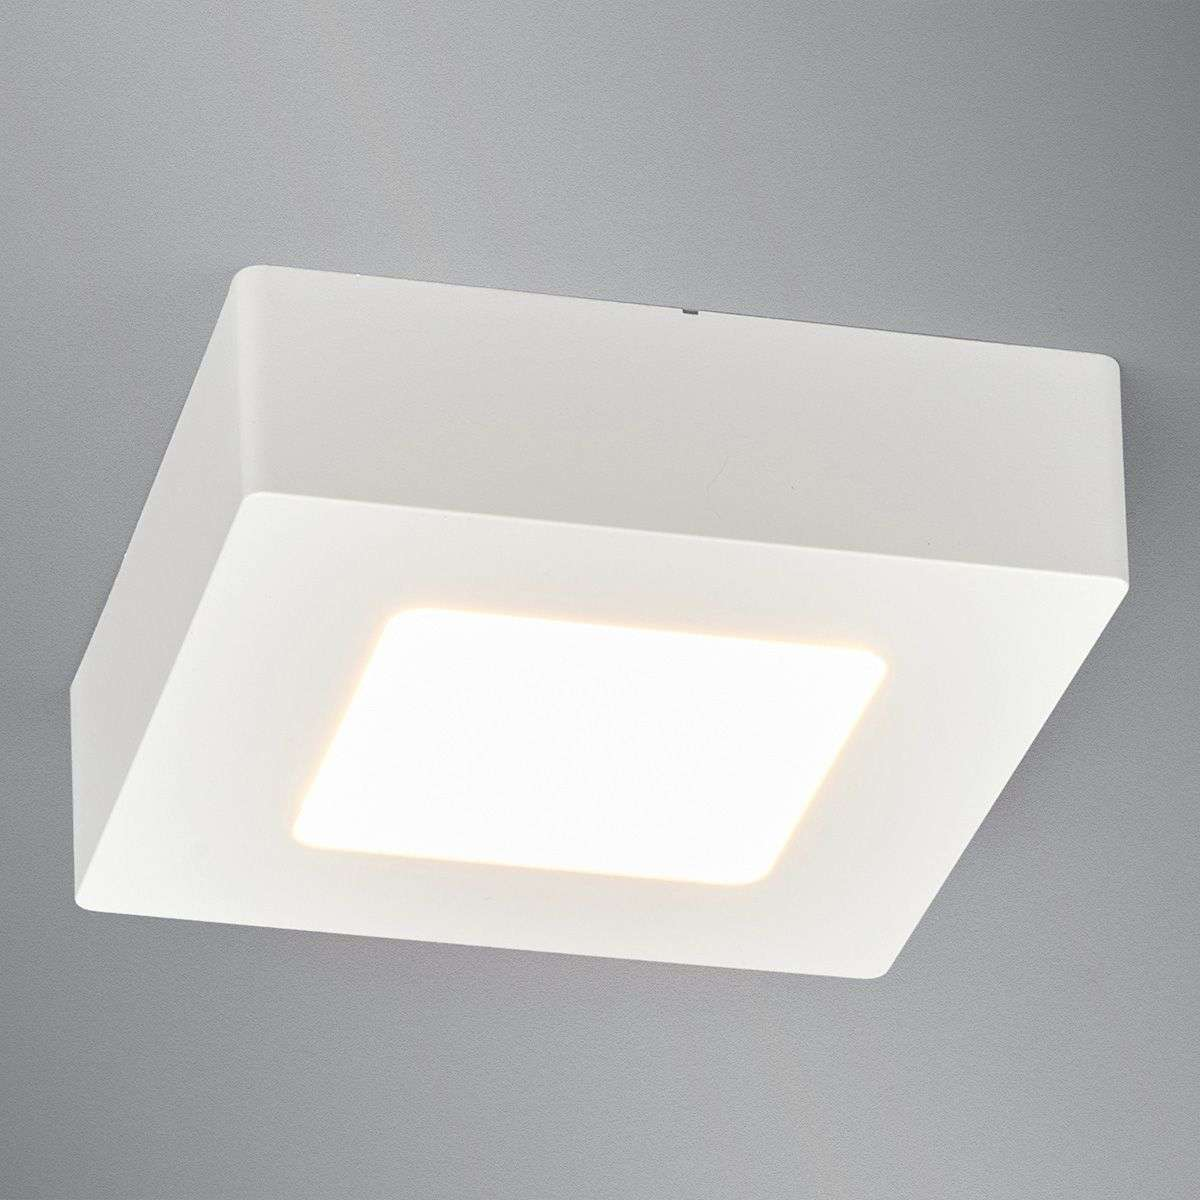 Spezielle Lampe Für Badezimmer: Compact LED Ceiling Lamp Rayan For Bathrooms